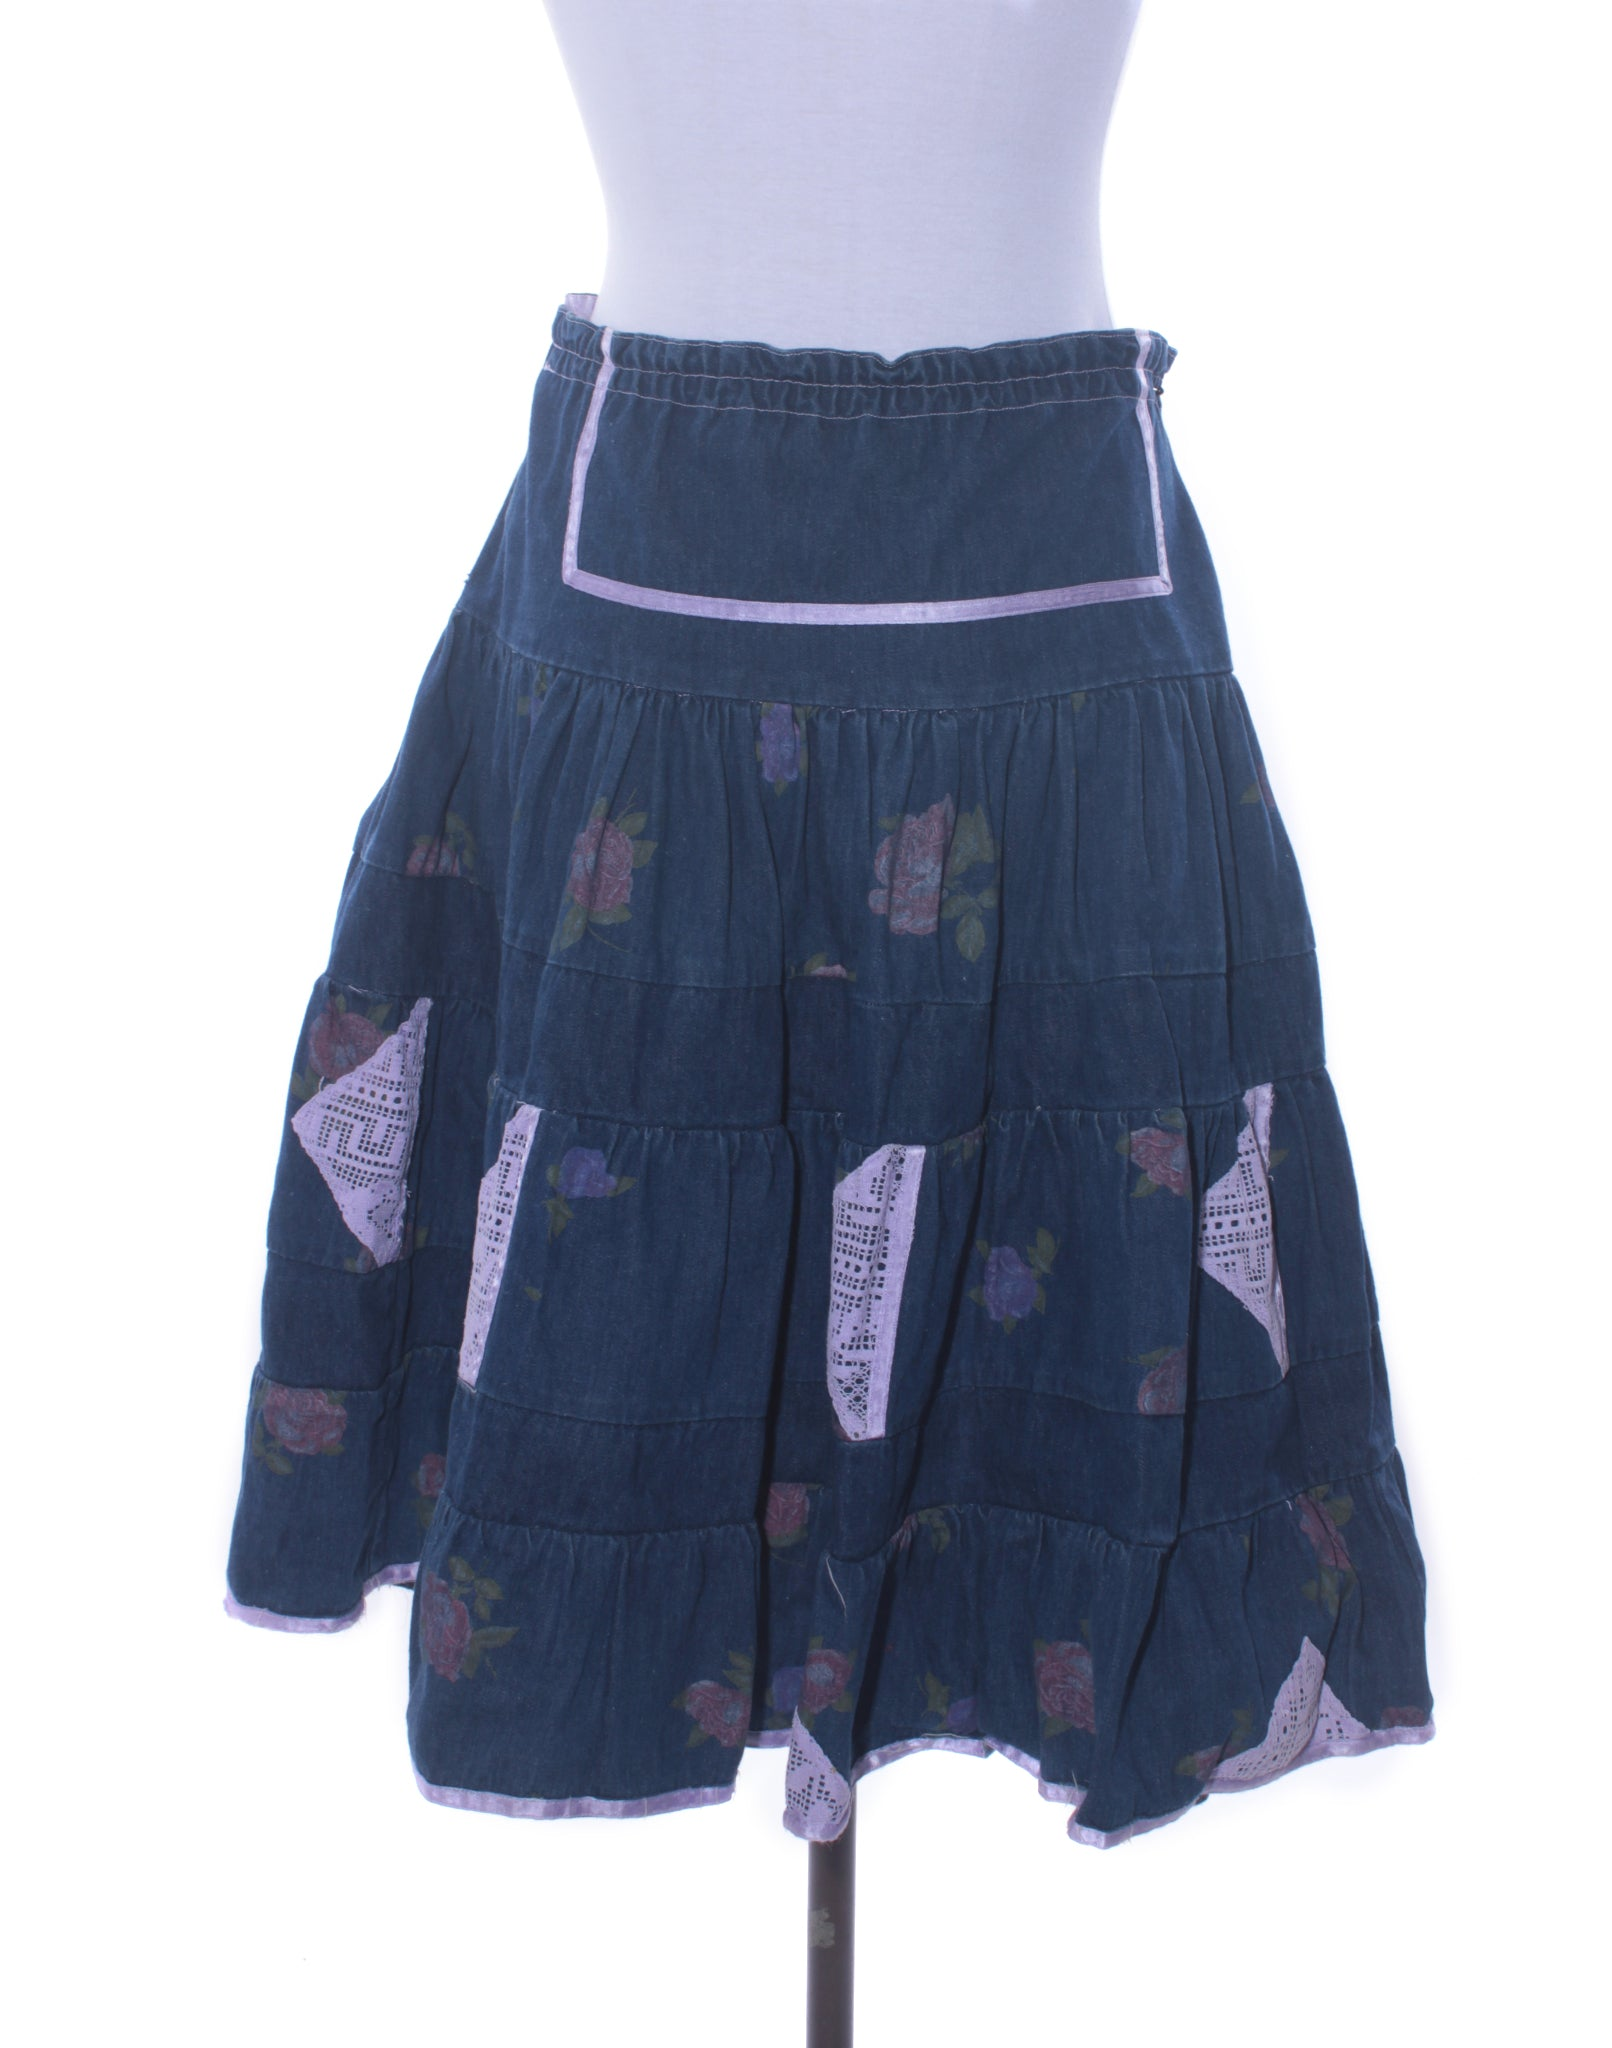 Vintage 80's Italian Denim Skirt